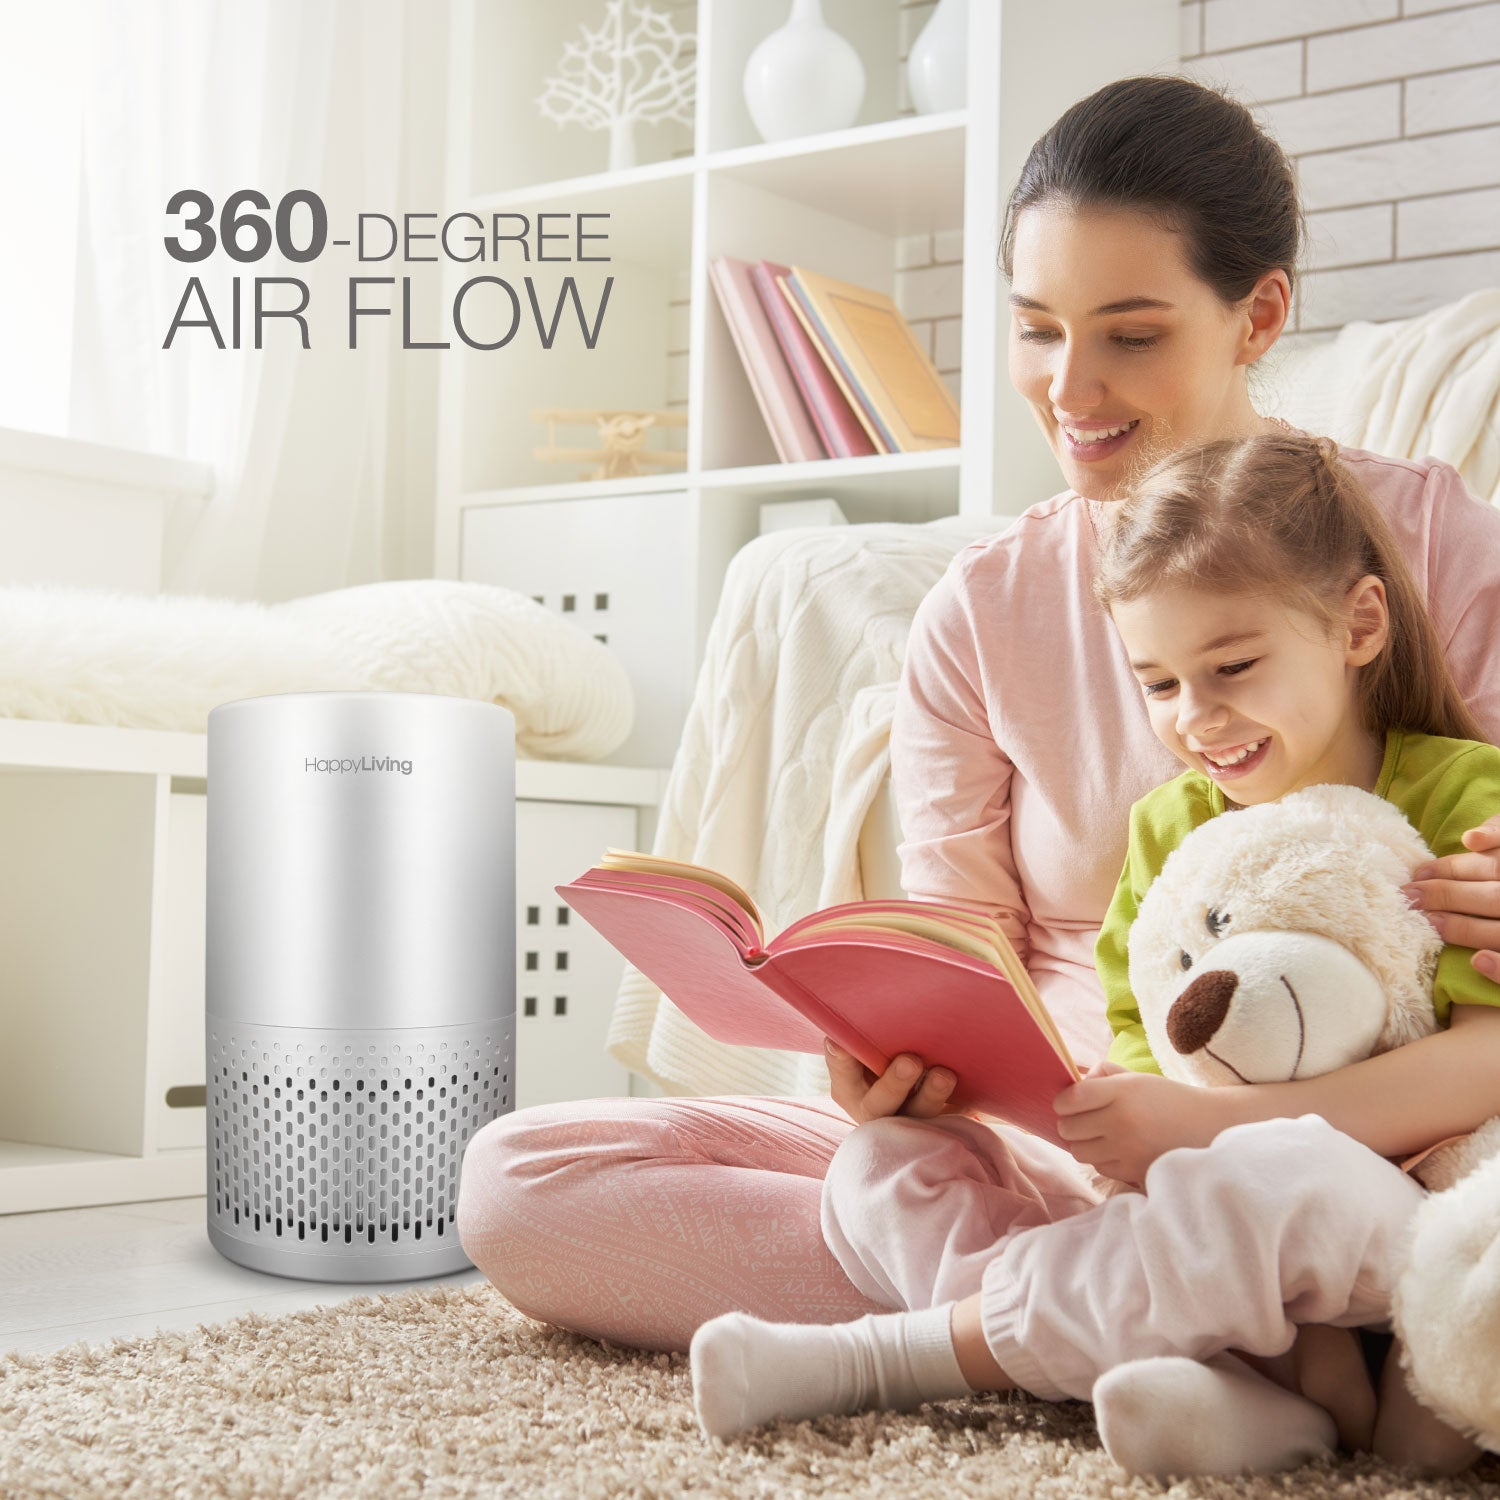 An image of the 360 degree air flow of the air purifier.